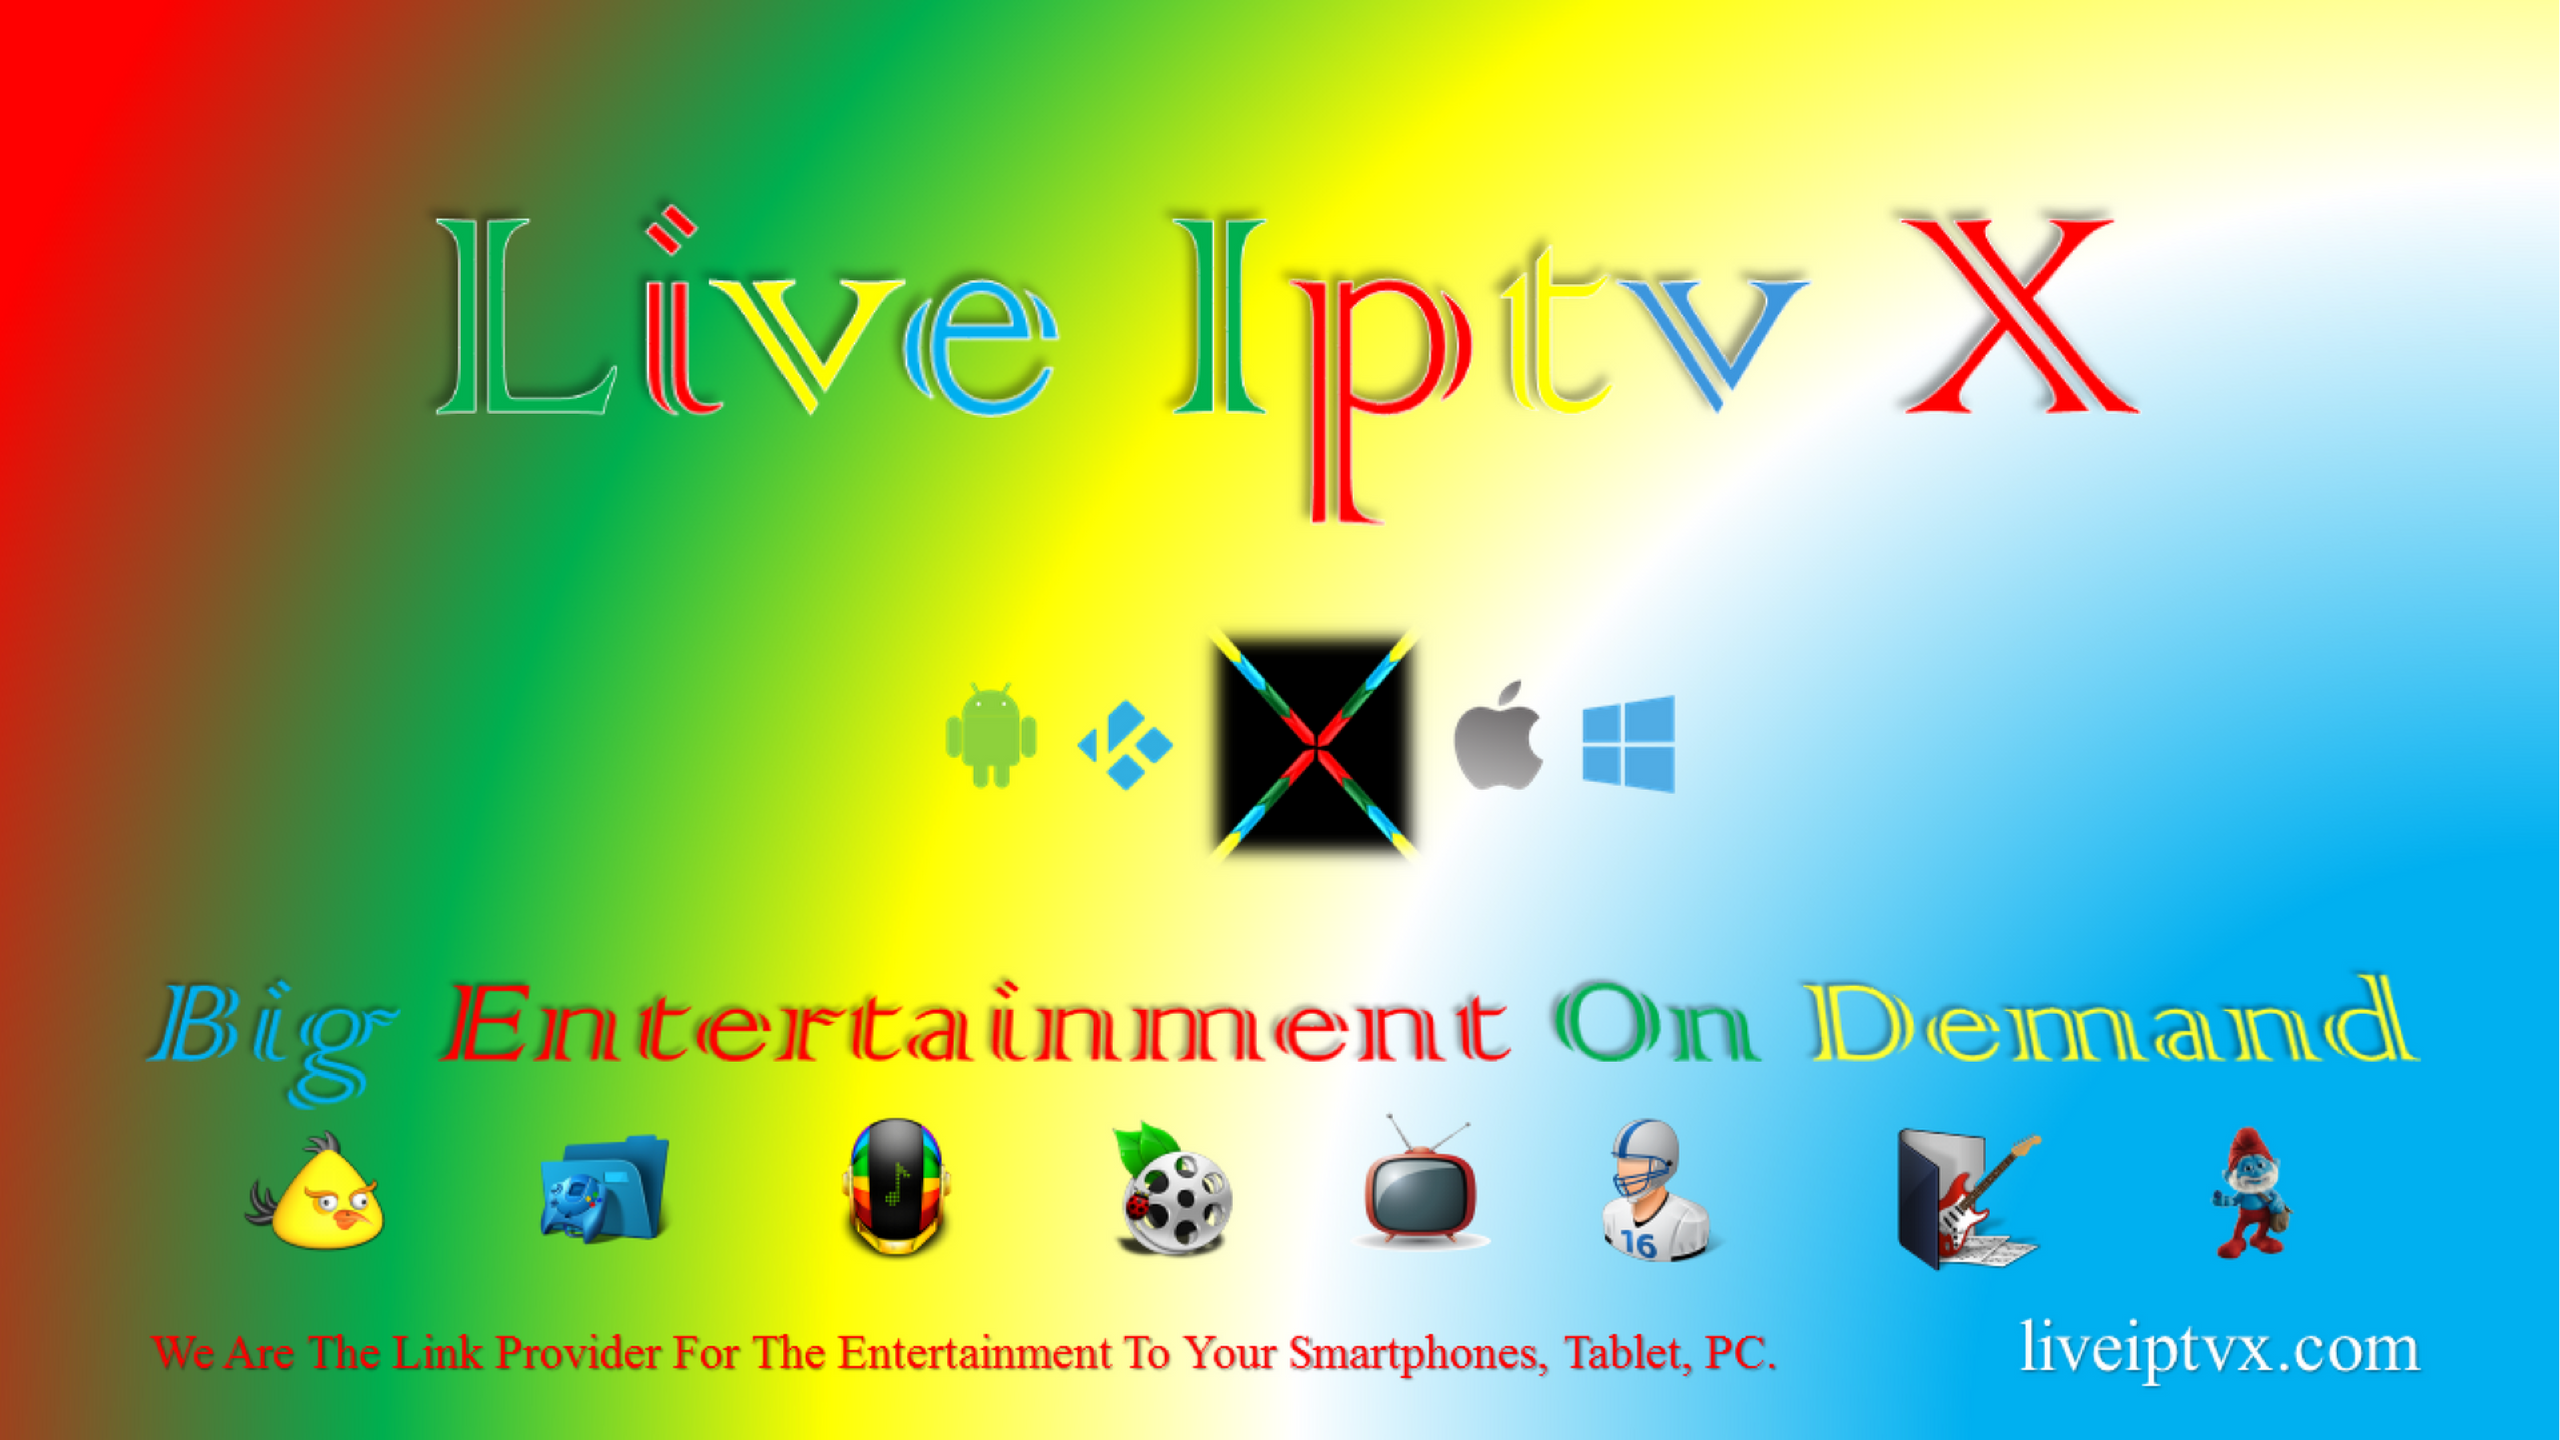 Big Entertainment On Demand Watch live tv, Live tv